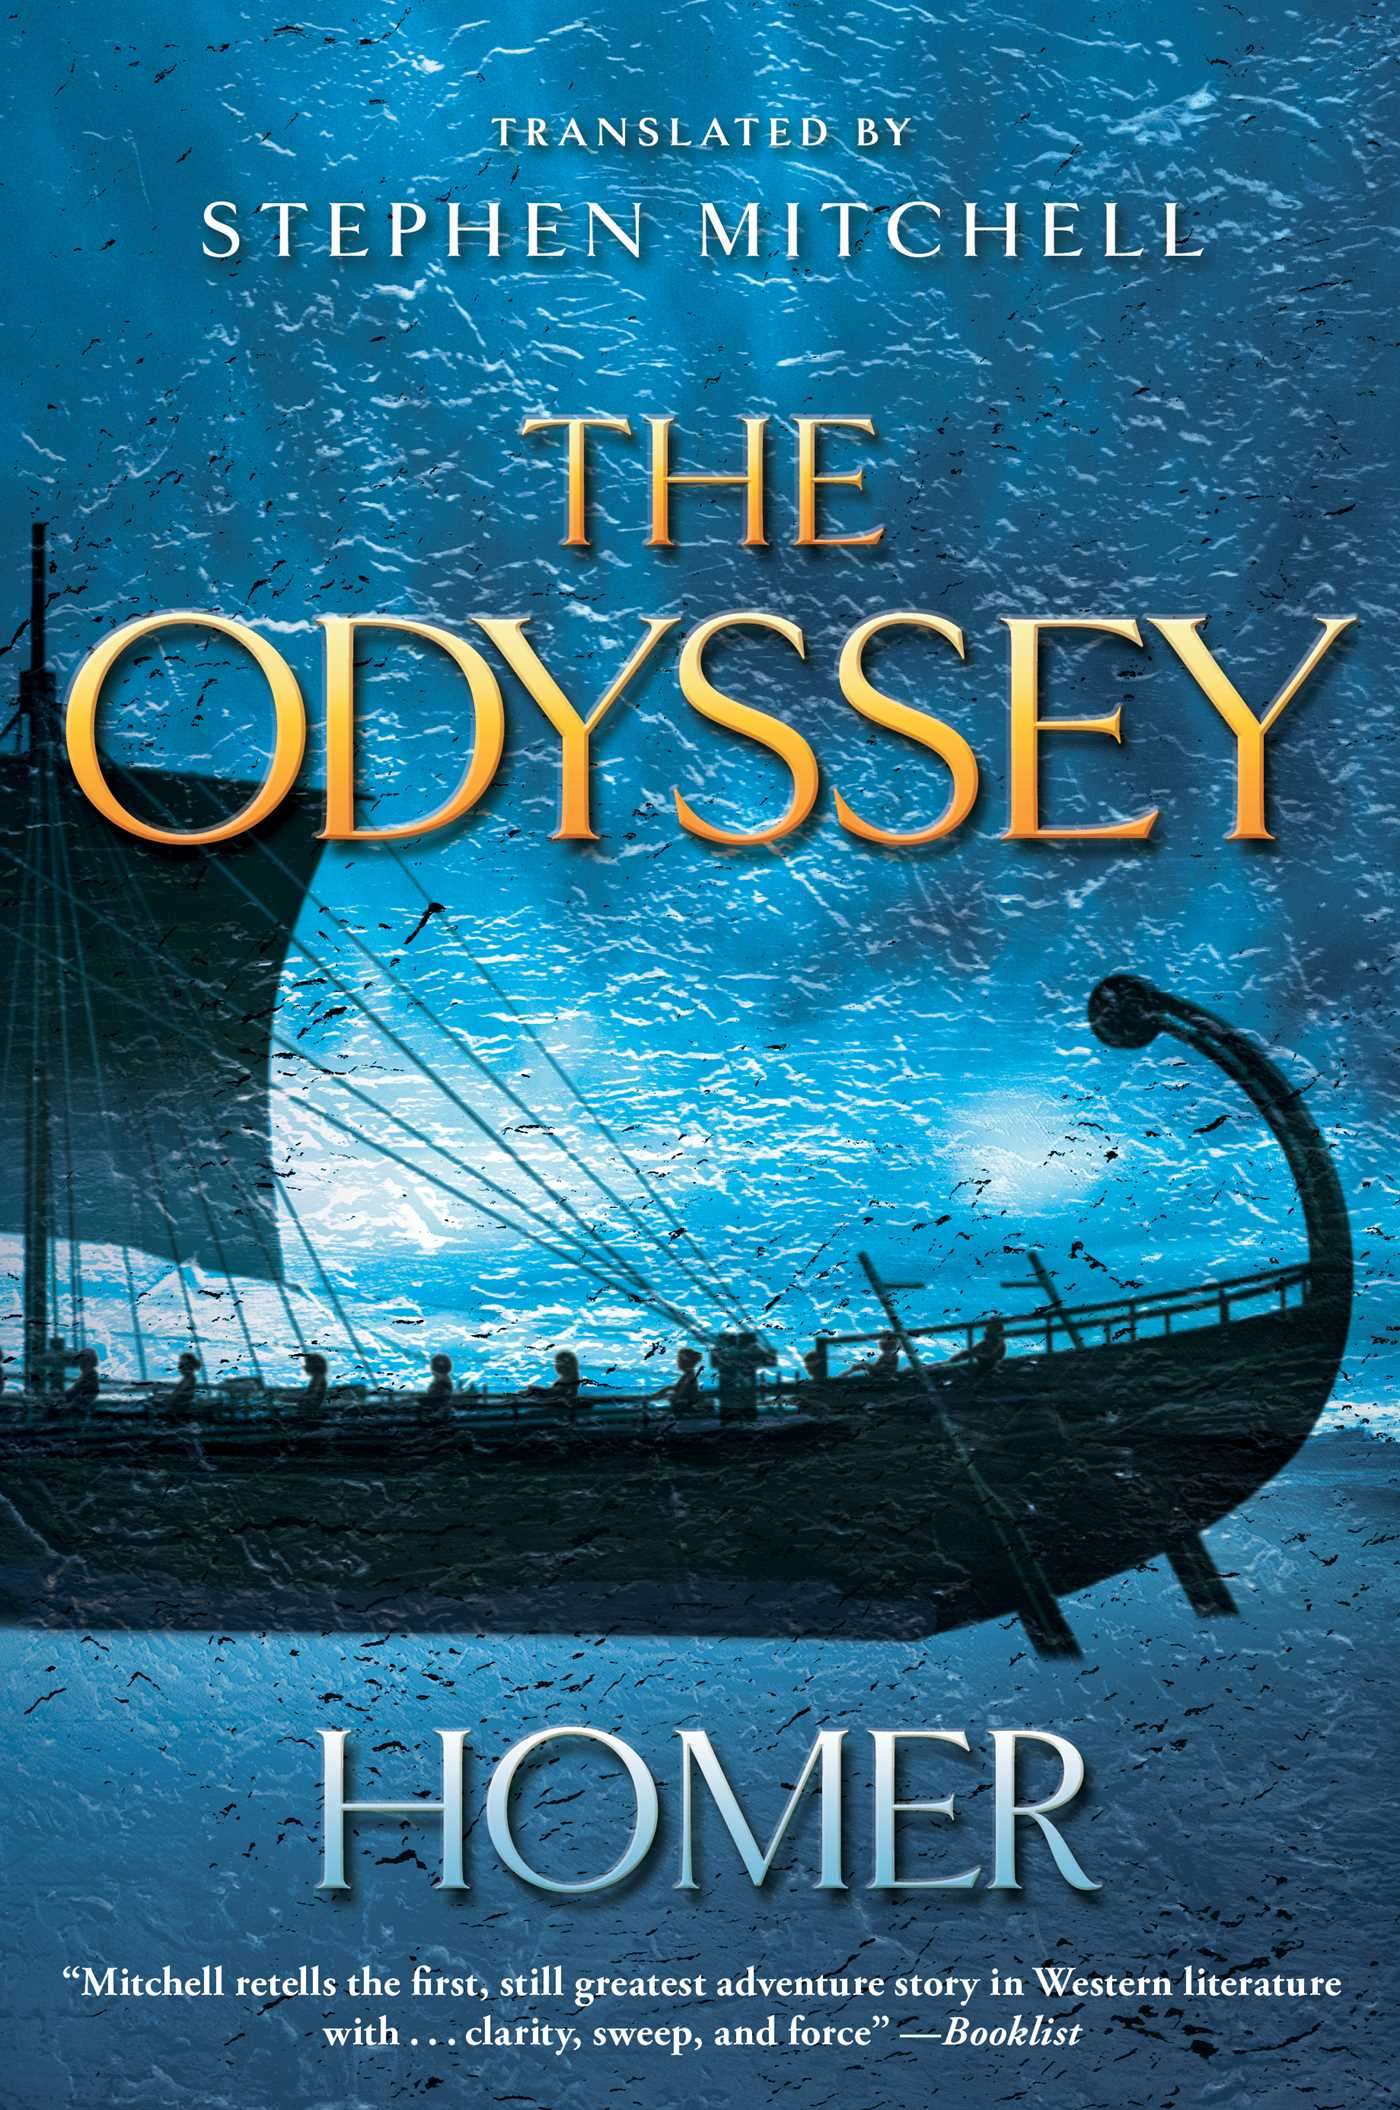 a literary analysis of odyssey by homer Odysseus is a combination of the self-made, self-assured man and the embodiment of the standards and mores of his culture he is favored by the gods and respected and admired by the mortals.